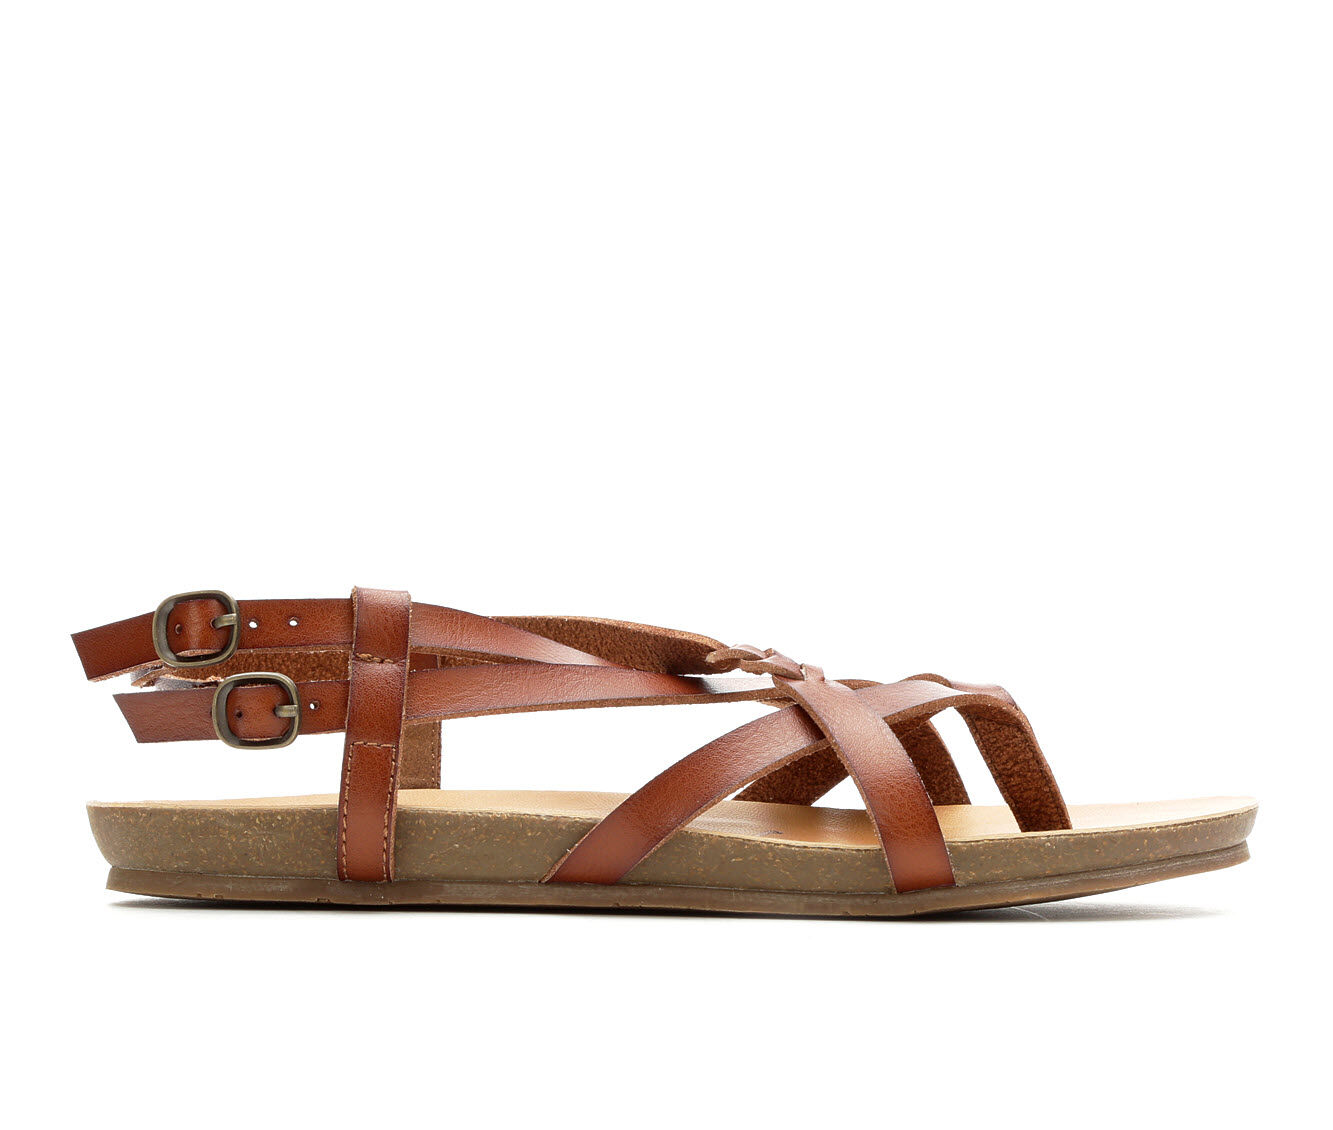 Women's Blowfish Malibu Gineh Strappy Footbed Sandals Scotch